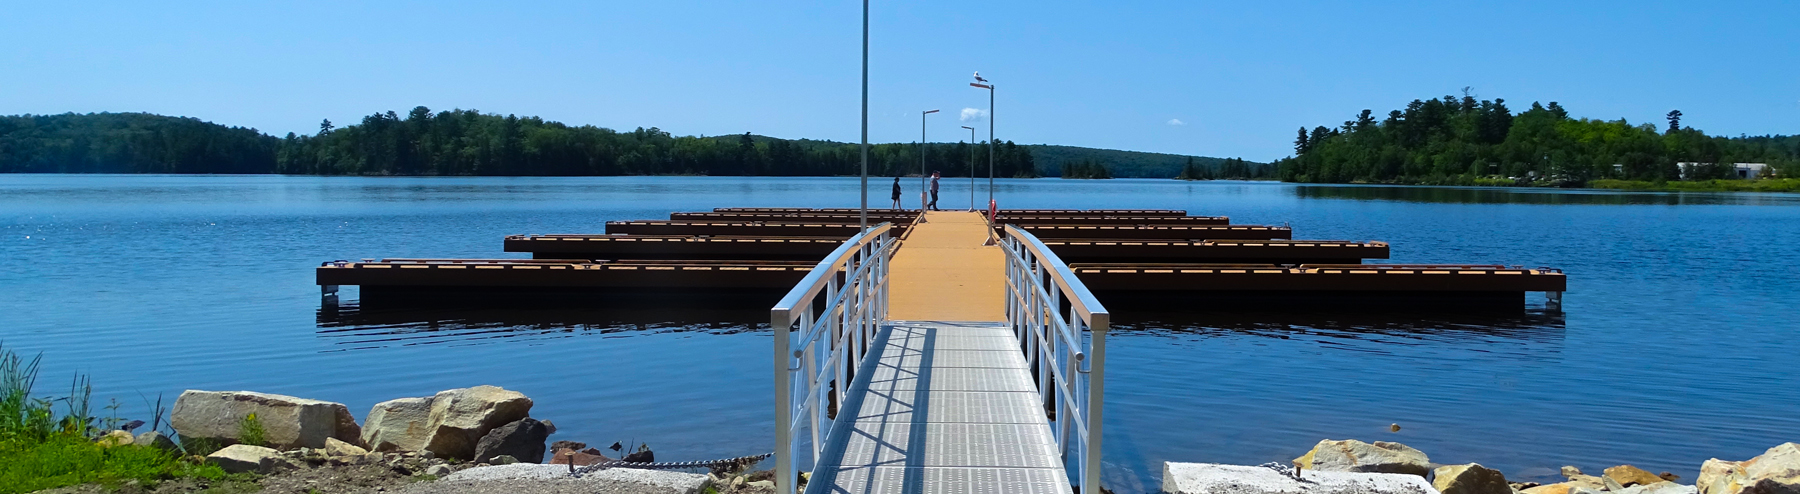 boat launch and boardwalk